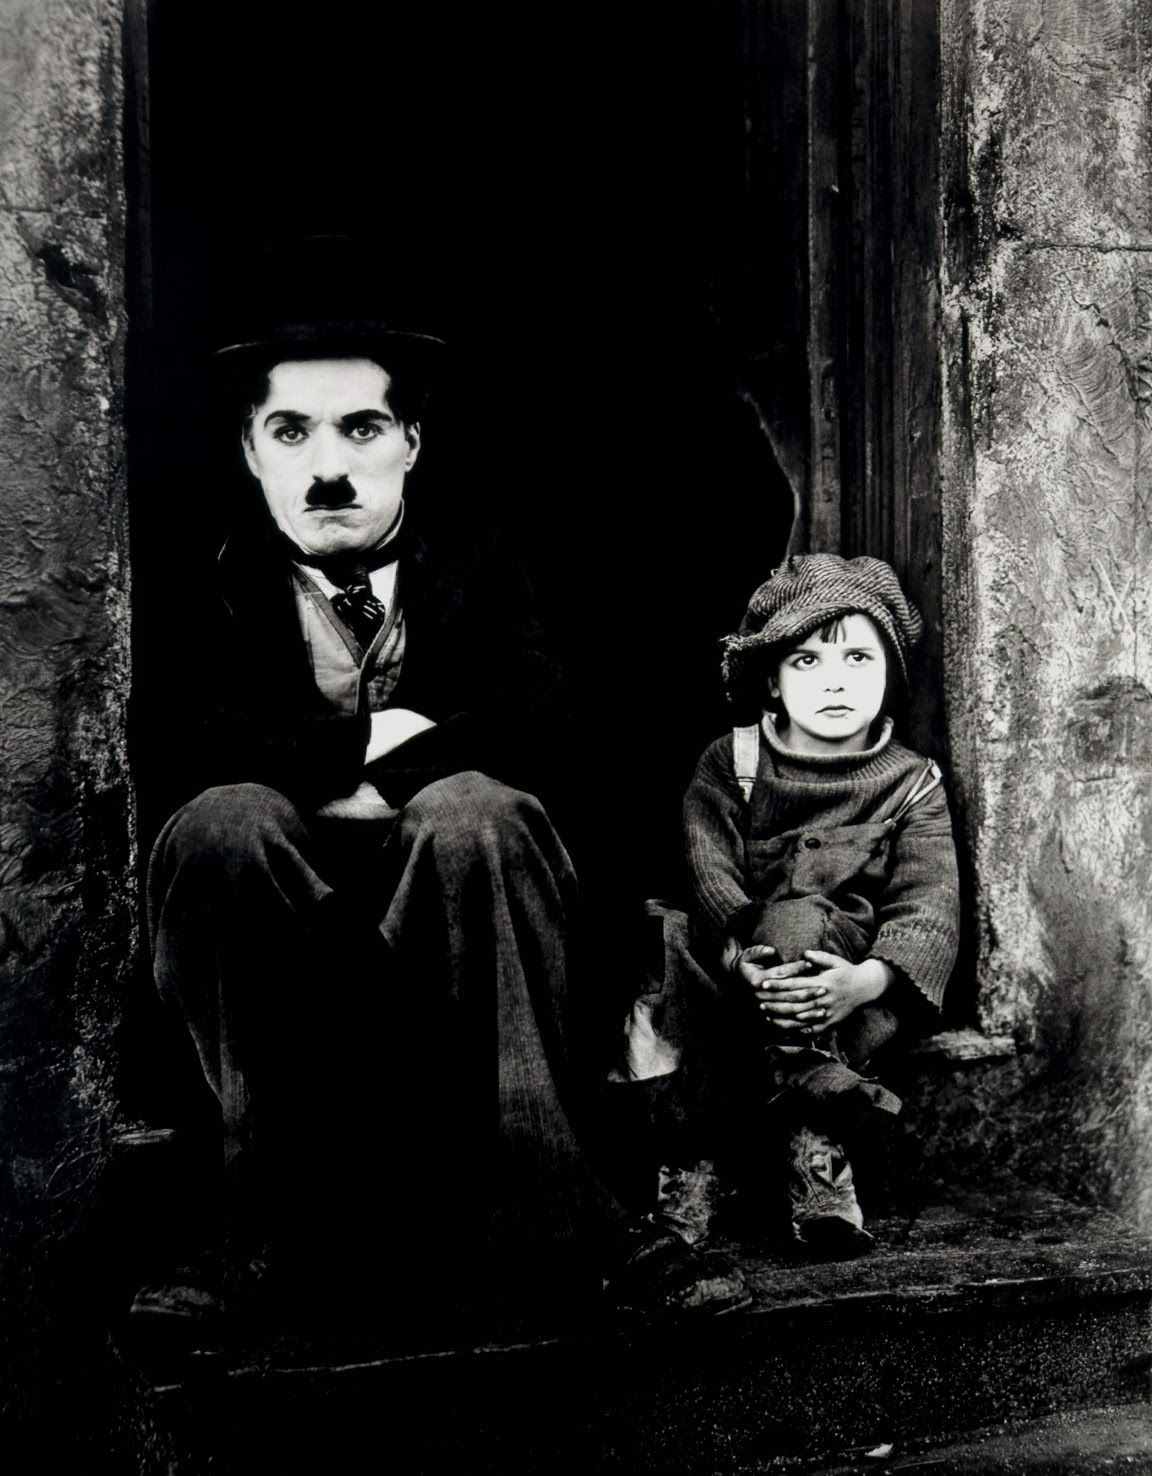 Charlie chaplin and the kid movie wallpaper wallpapers of 5 charlie chaplin and the kid movie wallpaper thecheapjerseys Images